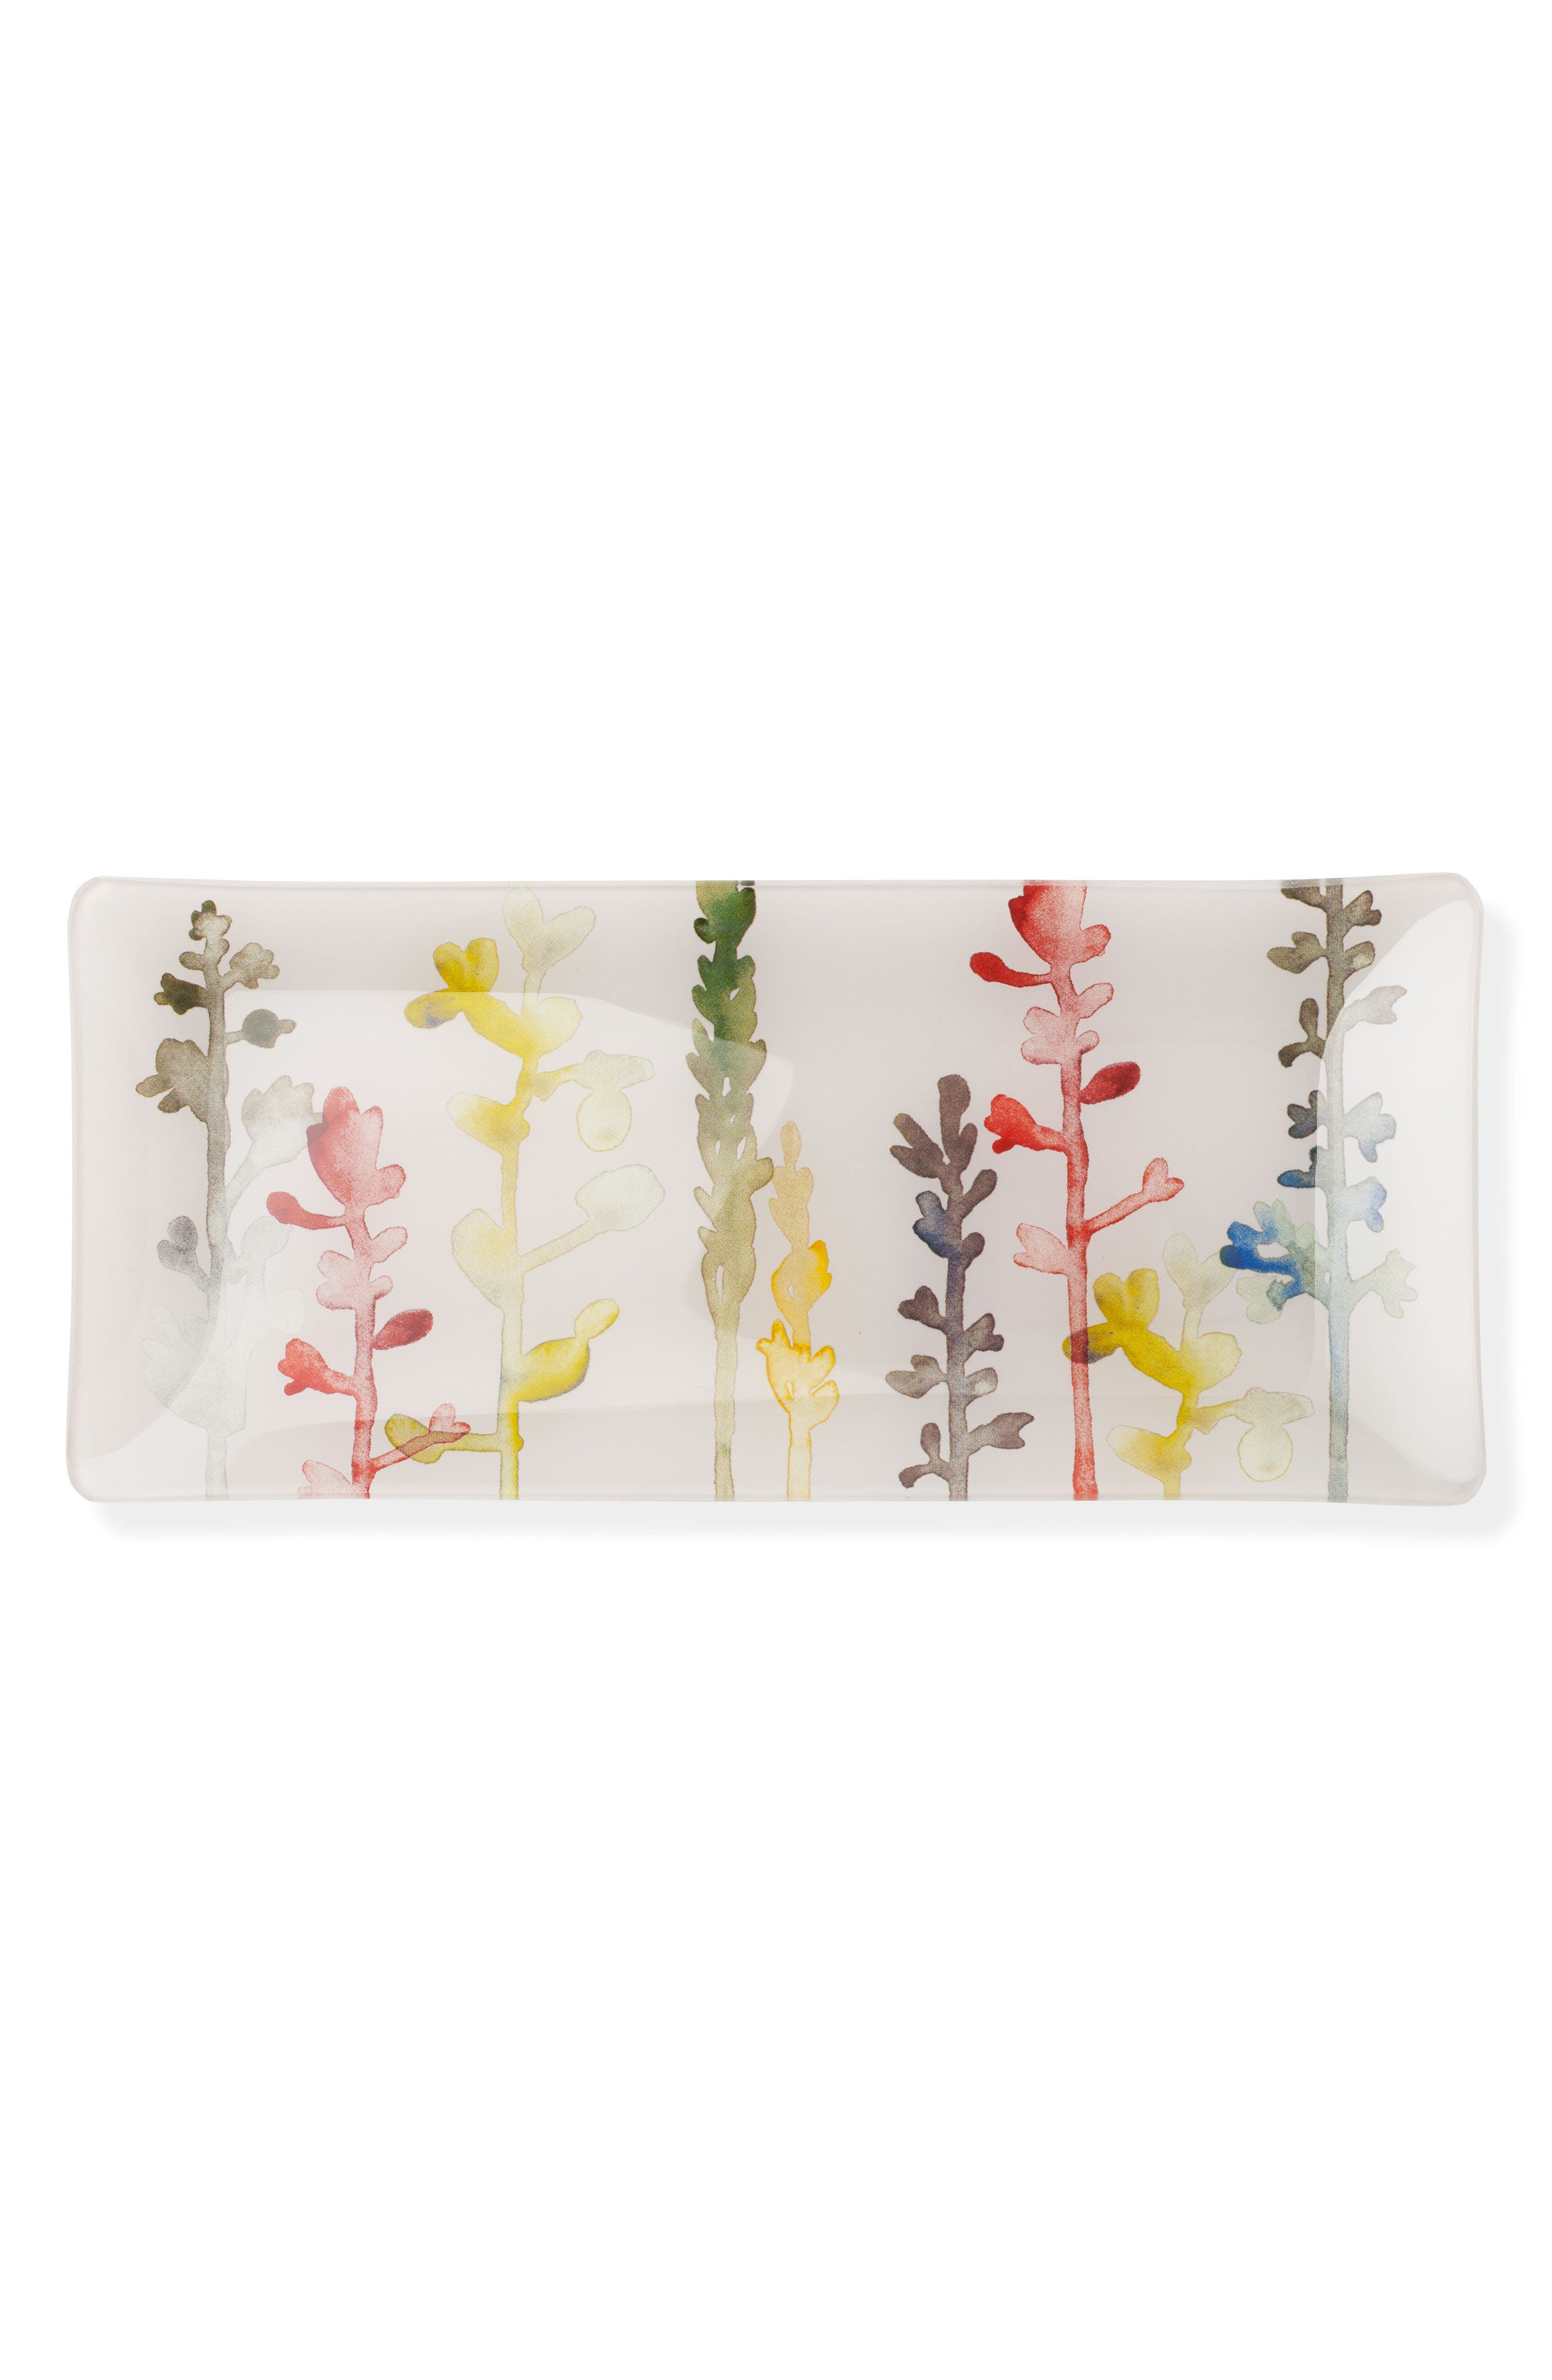 Fringe Studio Watercolor Stems Trinket Tray